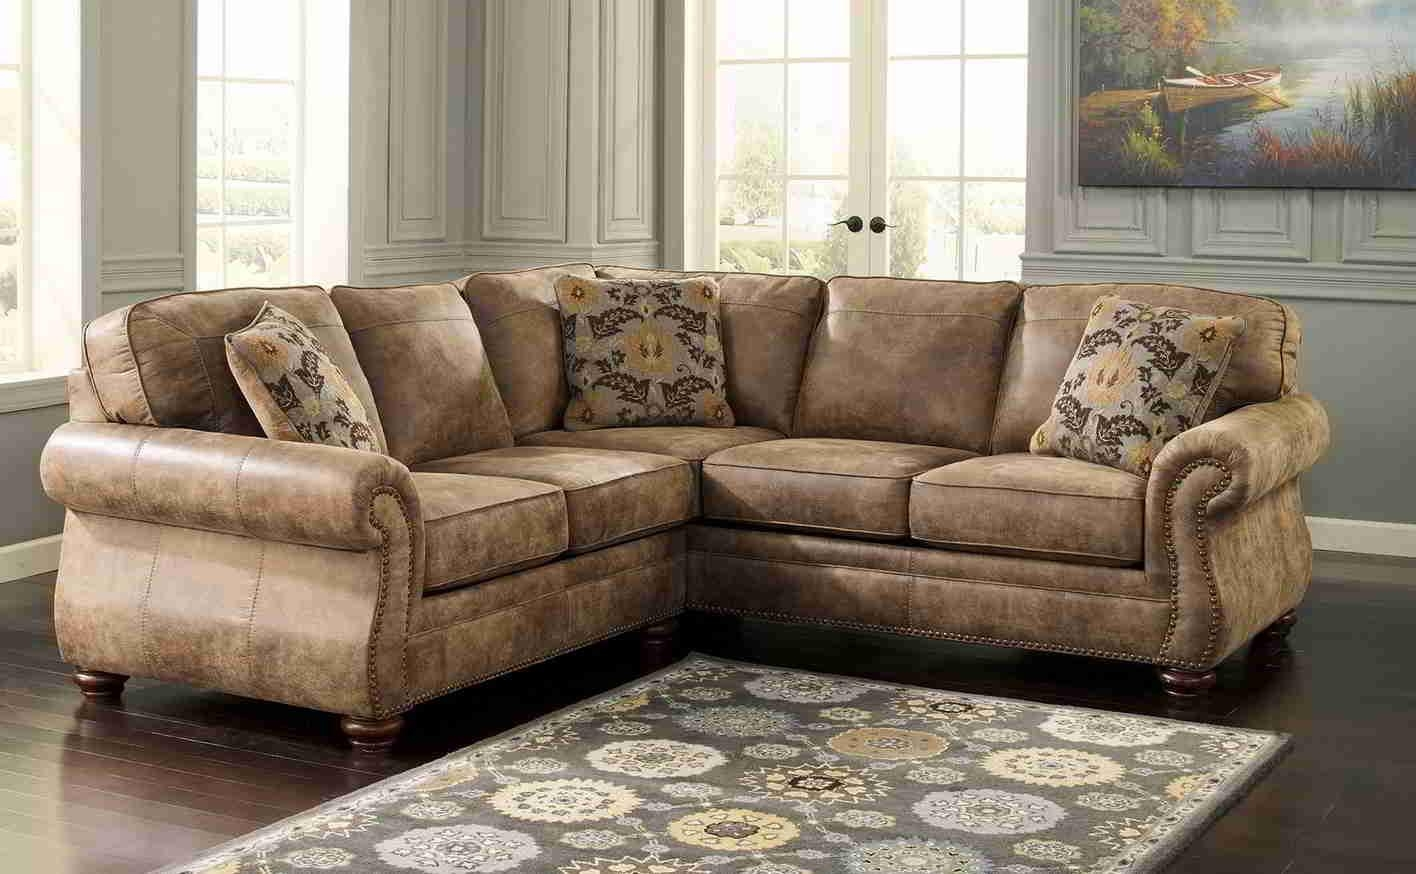 Awesome Sectional Sofas San Diego 24 For Leather Sectional Sofas With Leather Sectional Sofas Toronto (View 5 of 20)